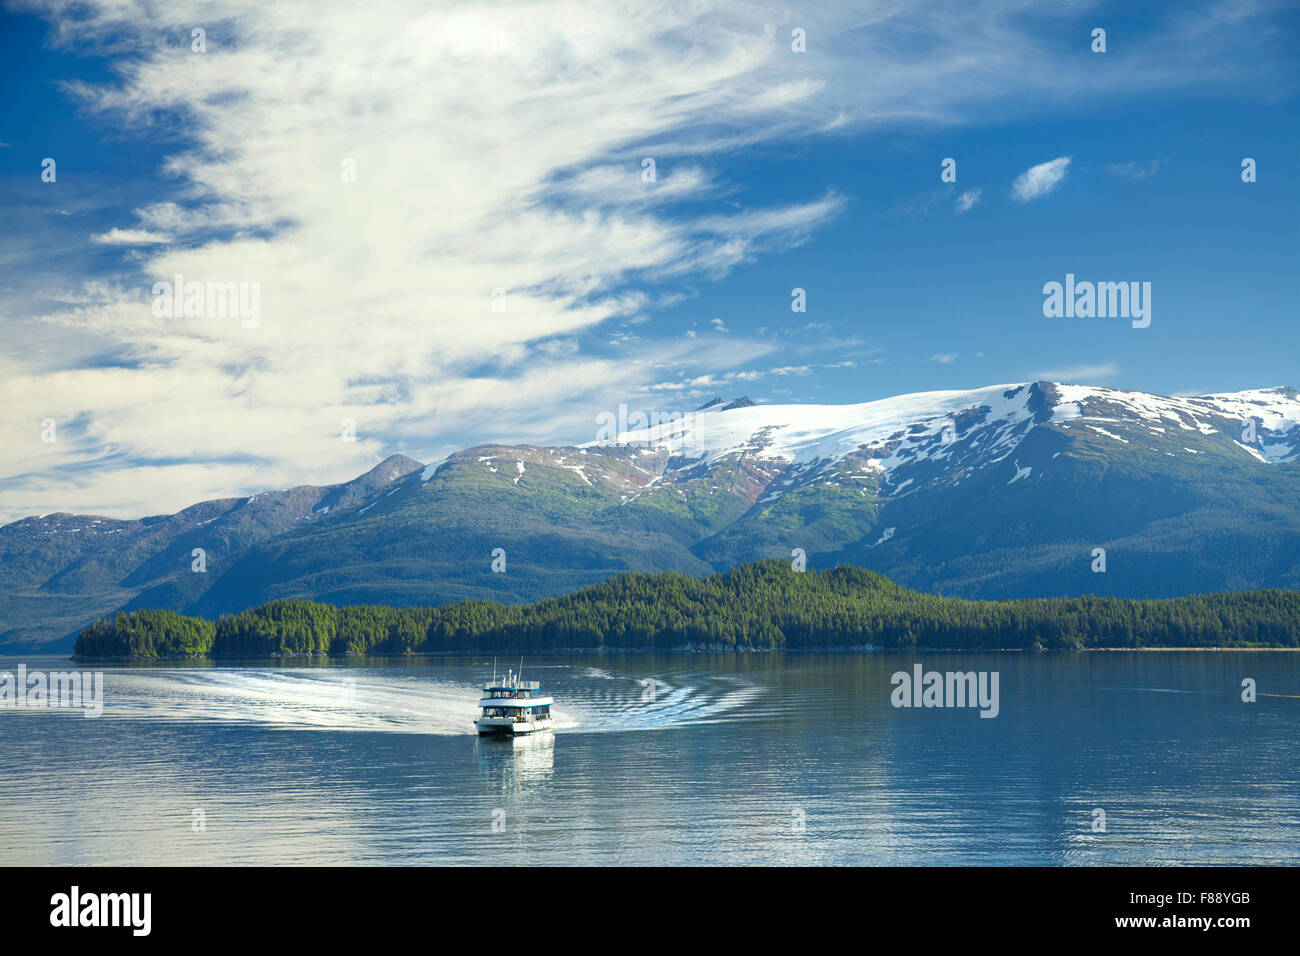 Boat in Tracy Arm Fjord Alaska - Stock Image